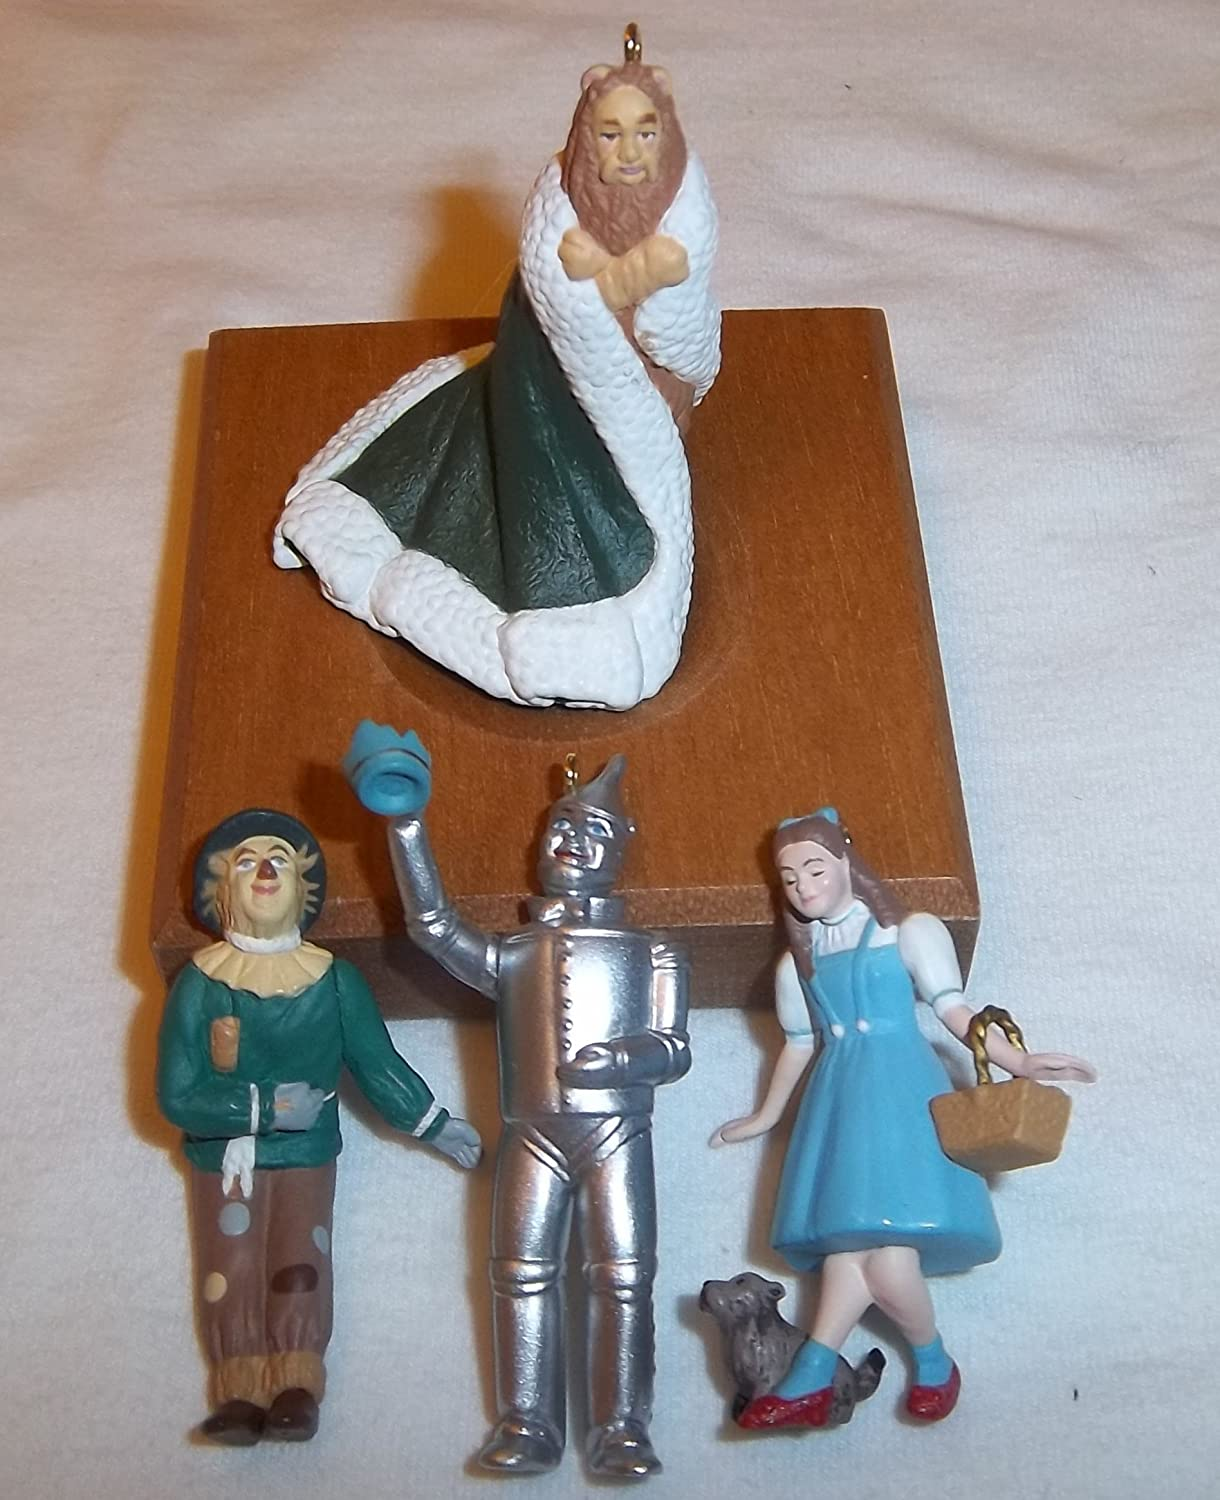 Hallmark 1997 Wizard of Oz King of the Forest (Set of 4) Miniature Ornaments